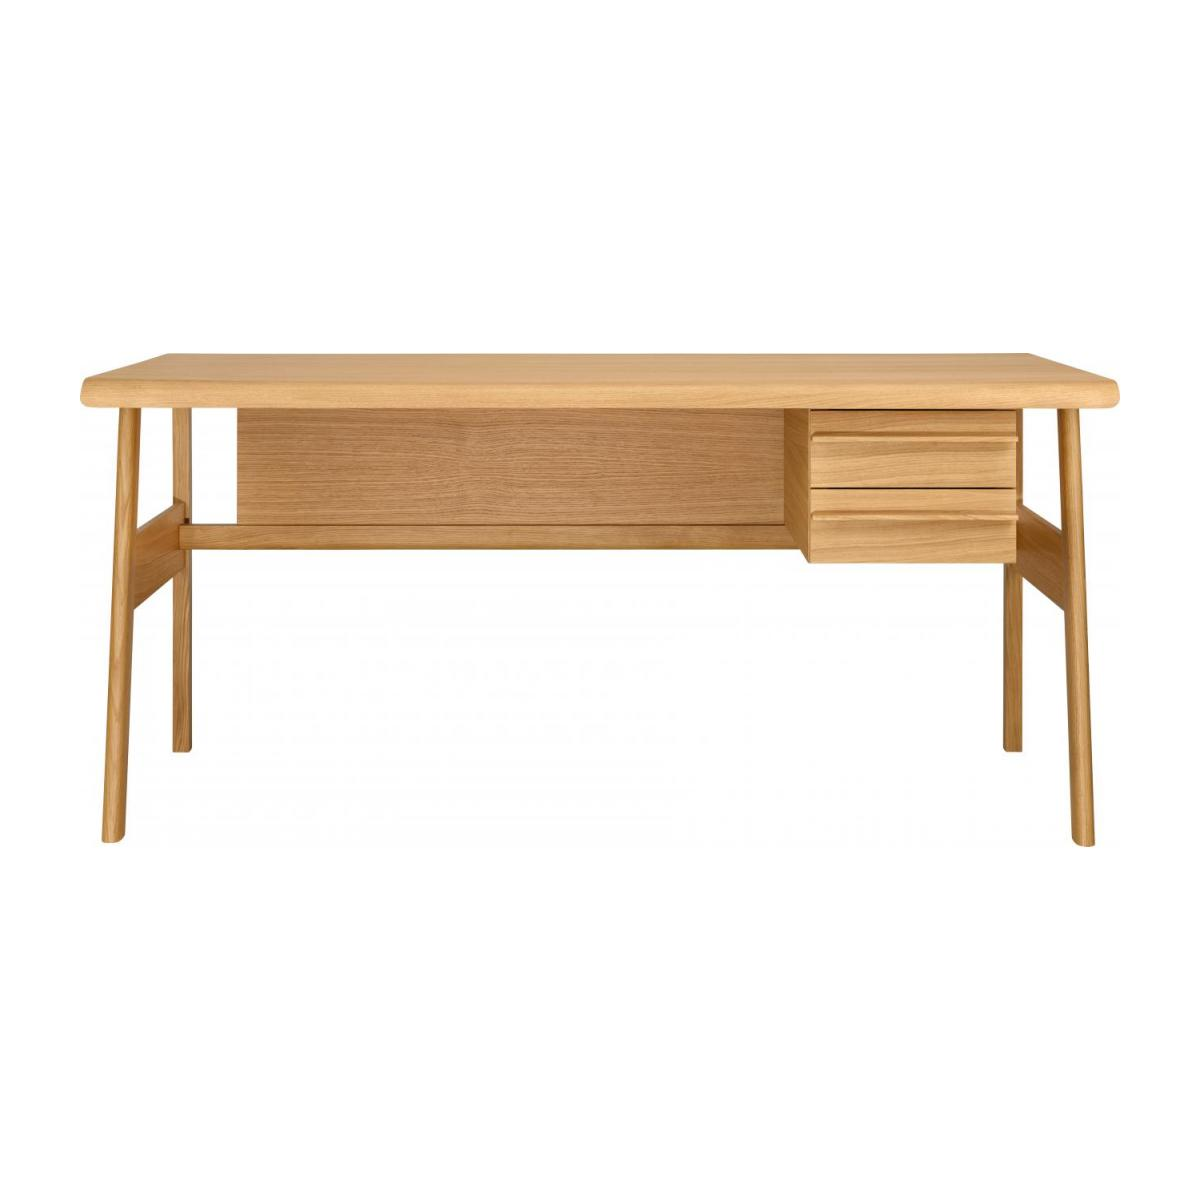 Big oak desk - Design by Joachim Jirou Najou n°3